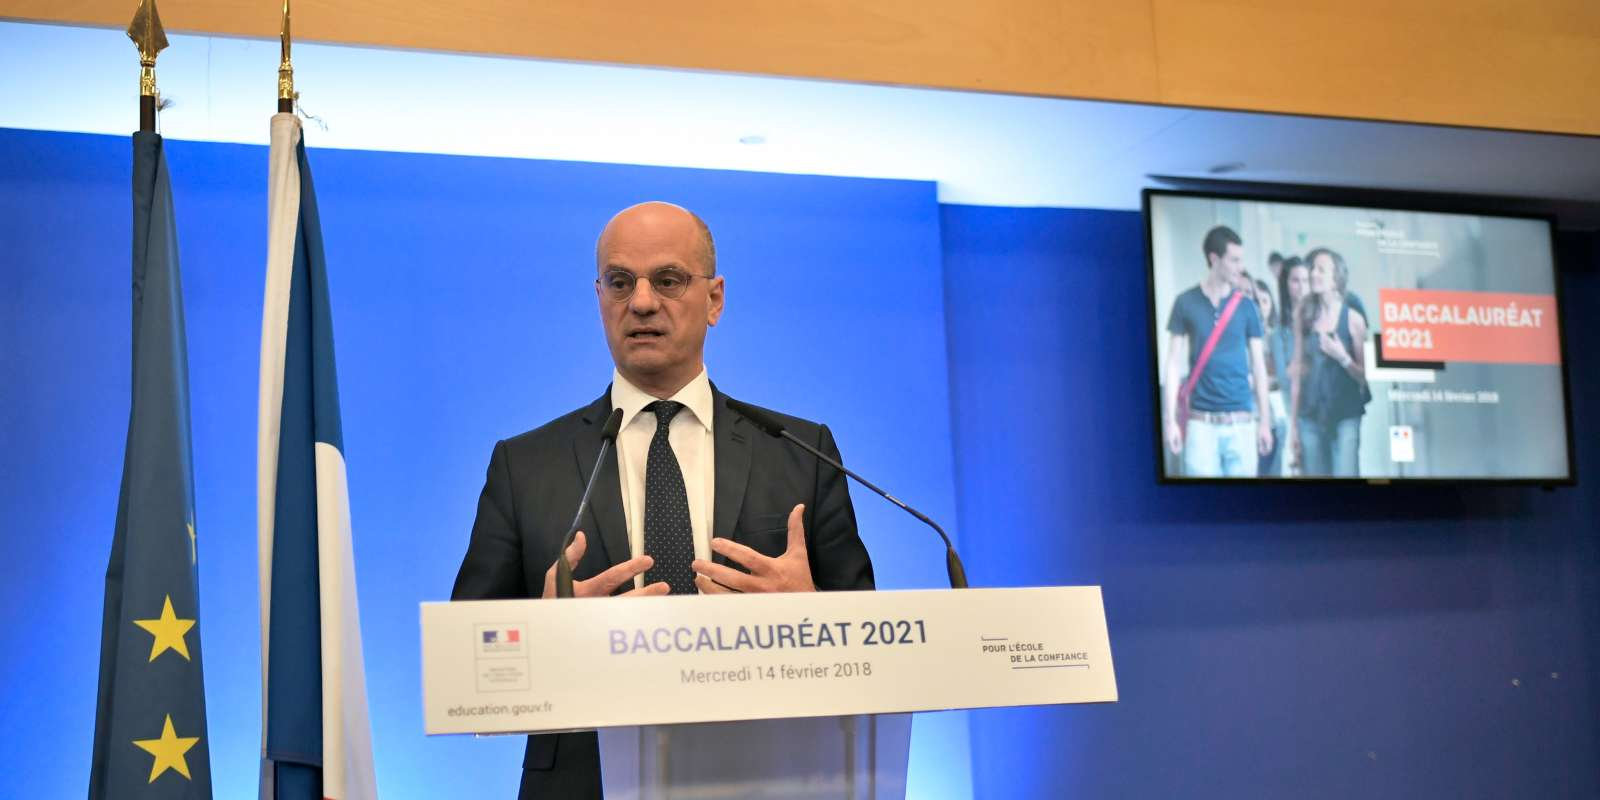 French Education Minister Jean-Michel Blanquer arrives to address a press conference on the reform of the Baccalaureat (France's high school diploma) at the Ministry of National Education in Paris on February 14, 2018. / AFP / STEPHANE DE SAKUTIN